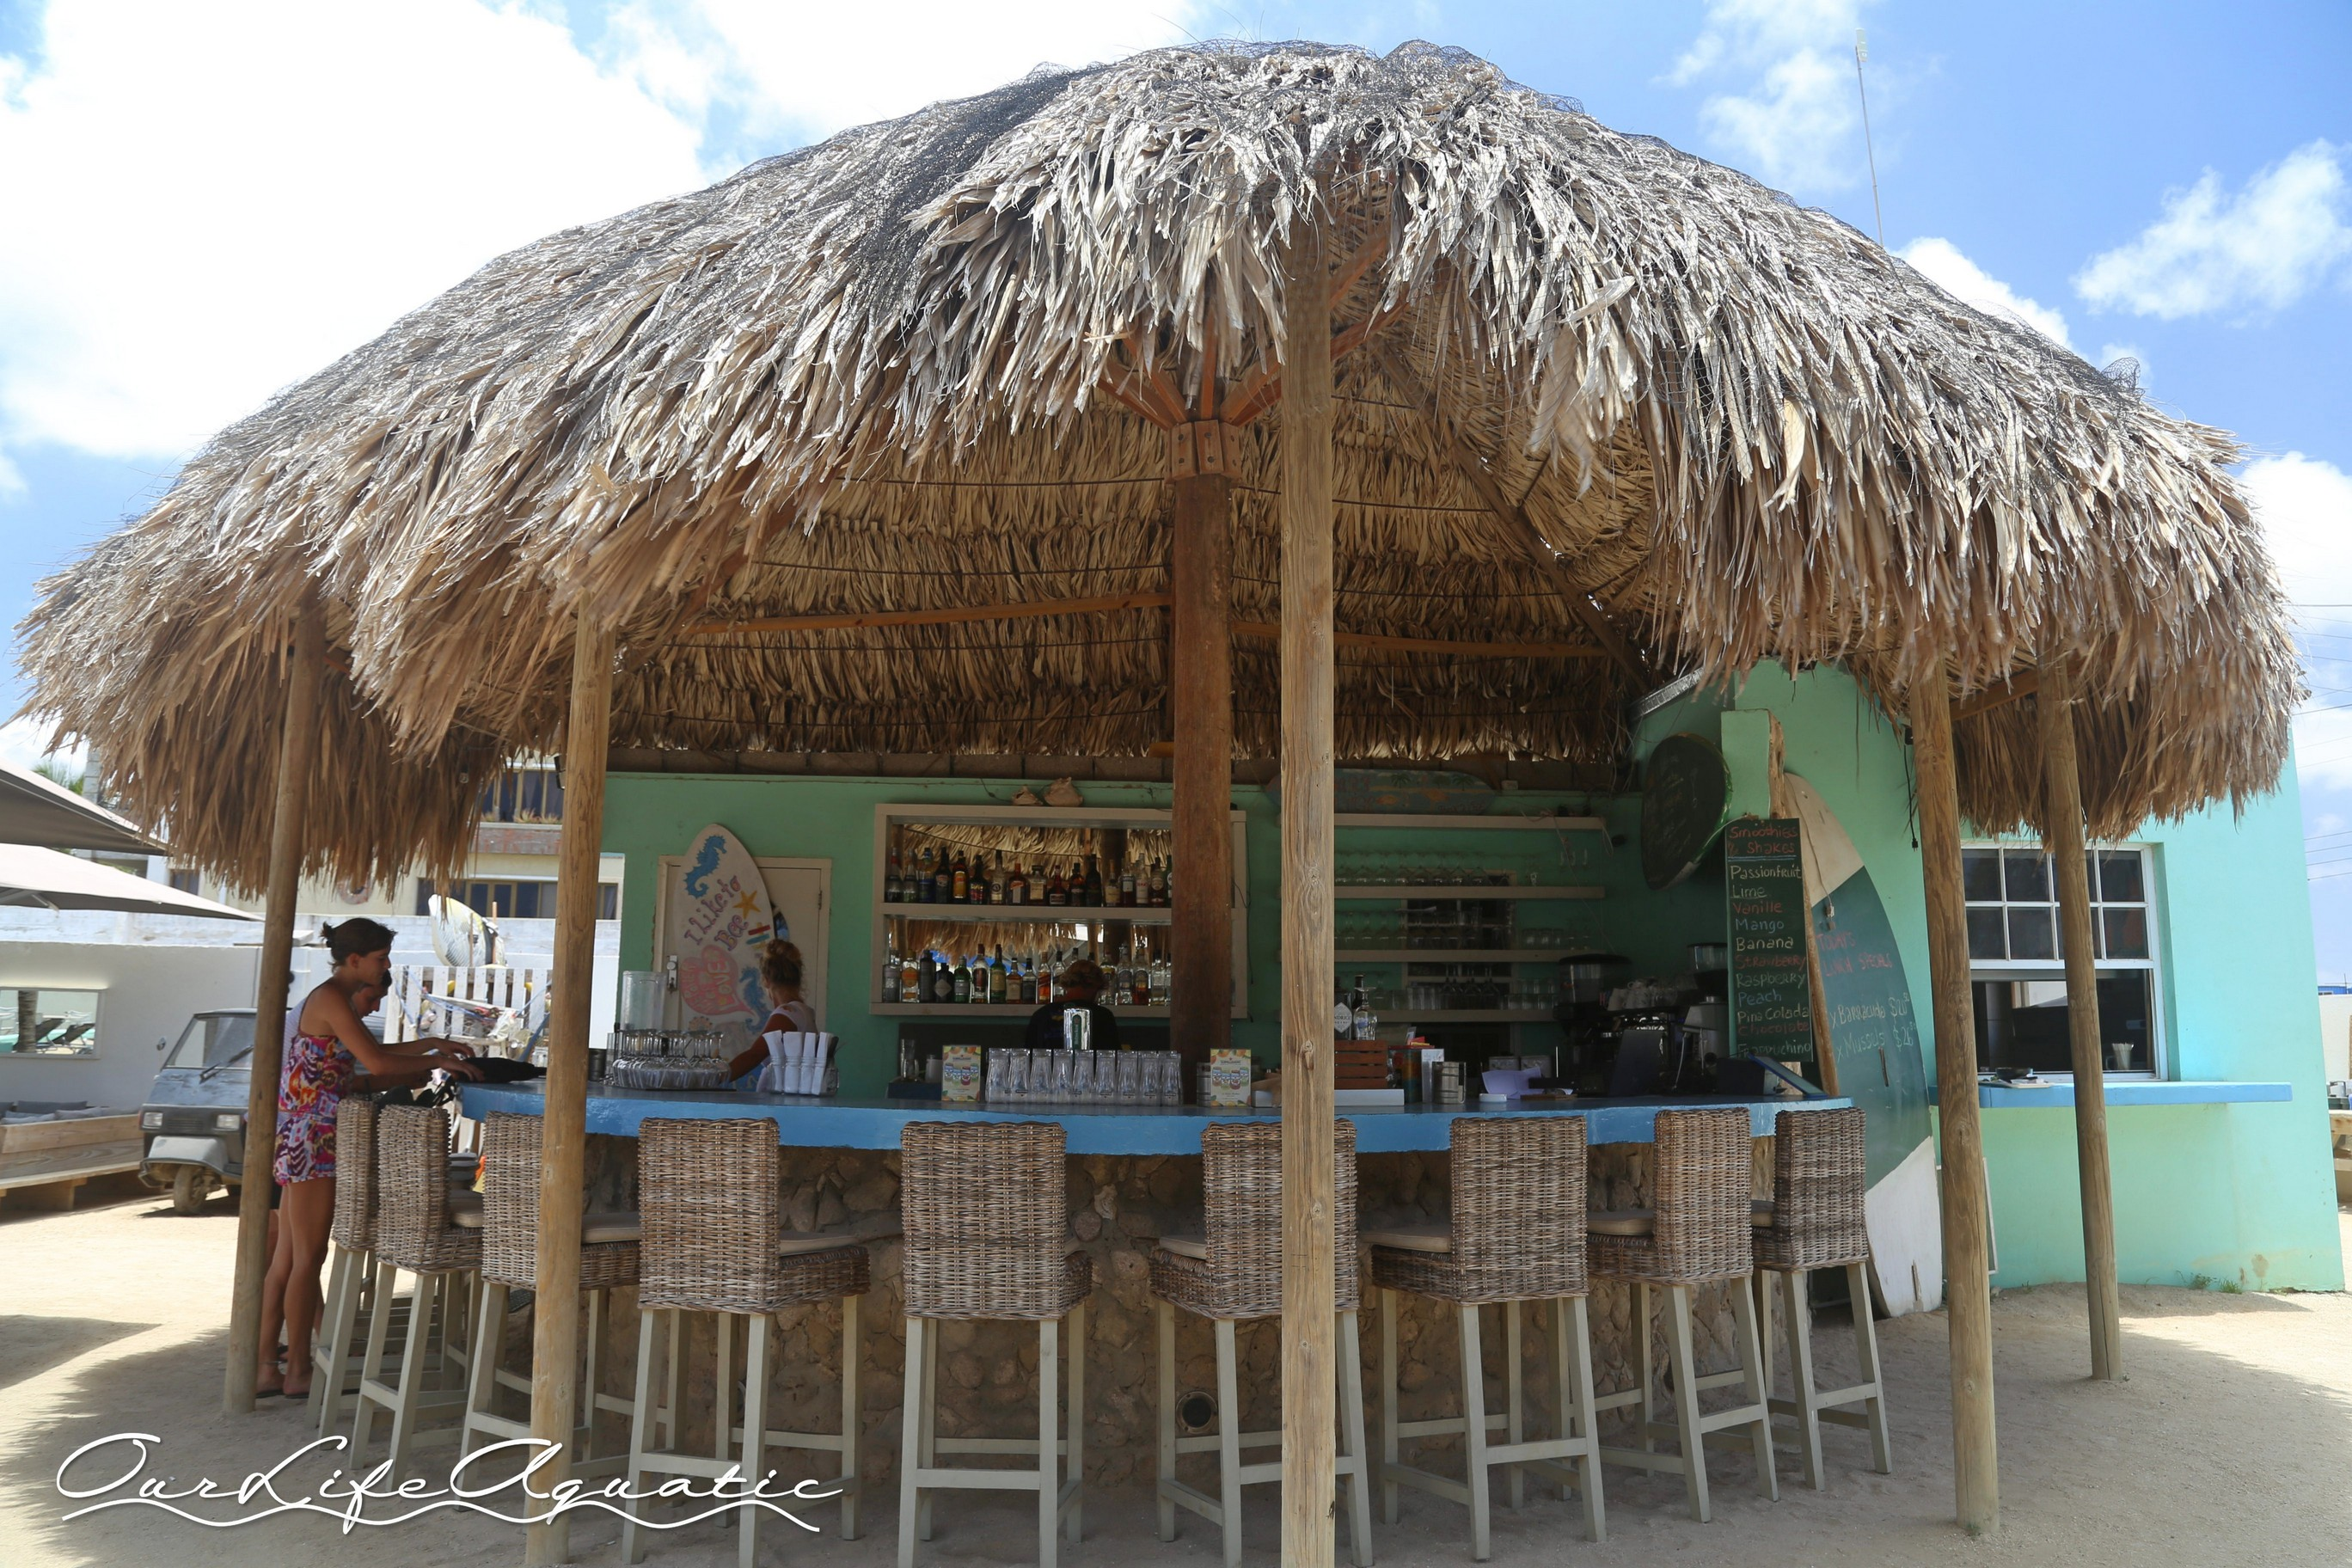 One of our favorite post-dive watering holes